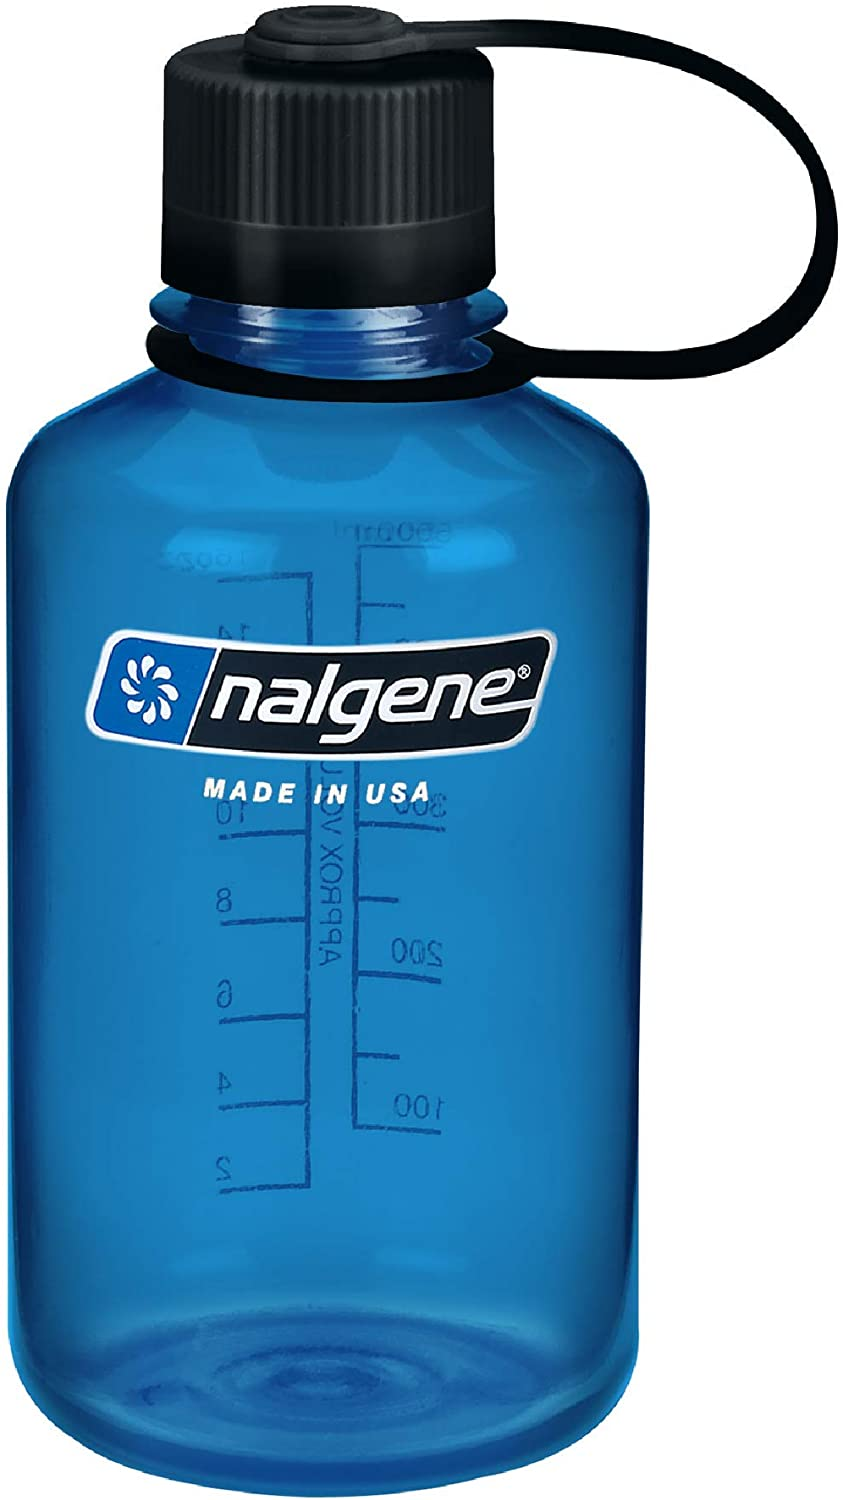 Nalgene NM 1 PtT Sports Water Bottle, 16 oz